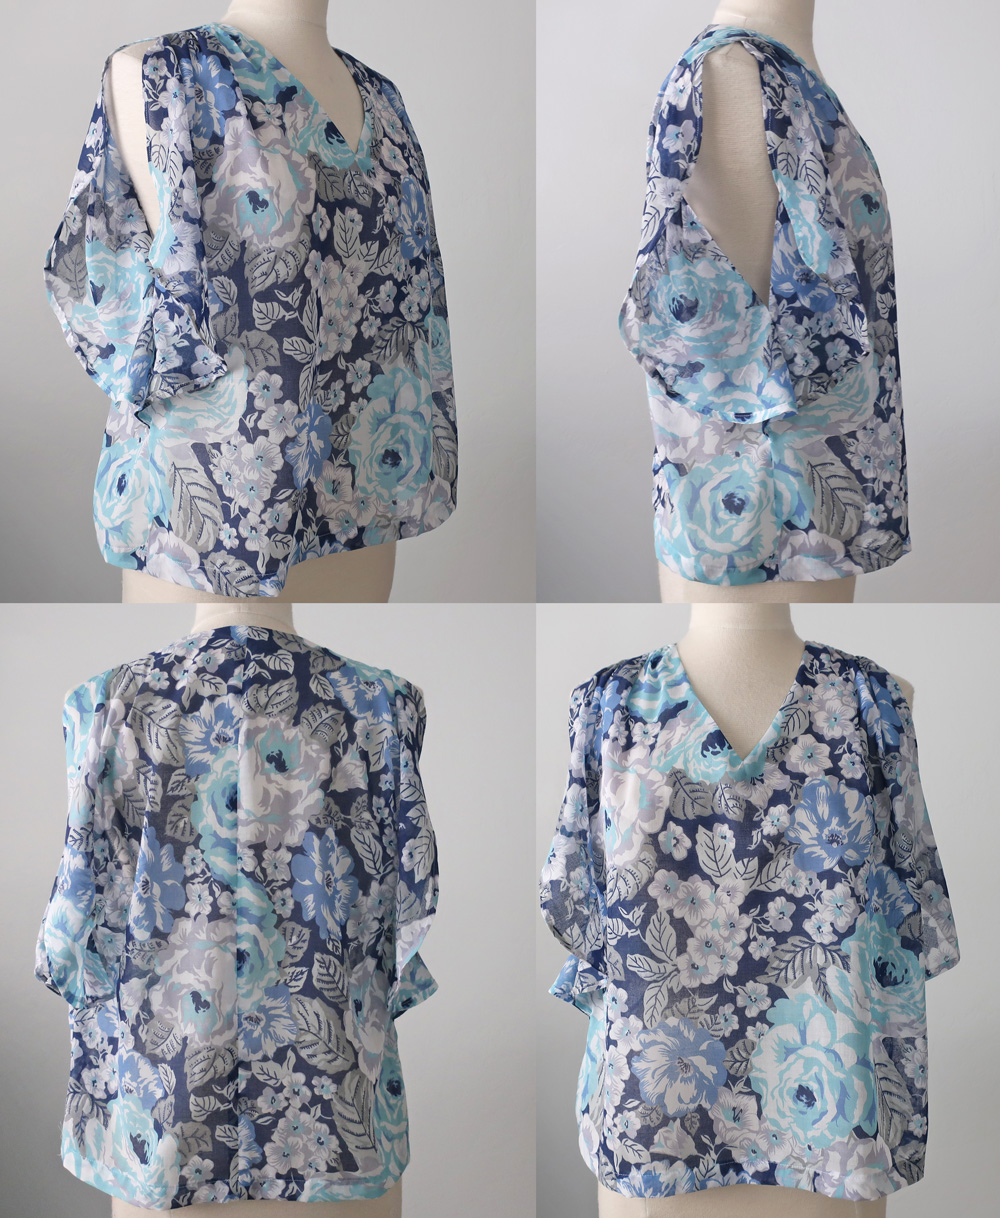 Blue voile flutter sleeve top composite